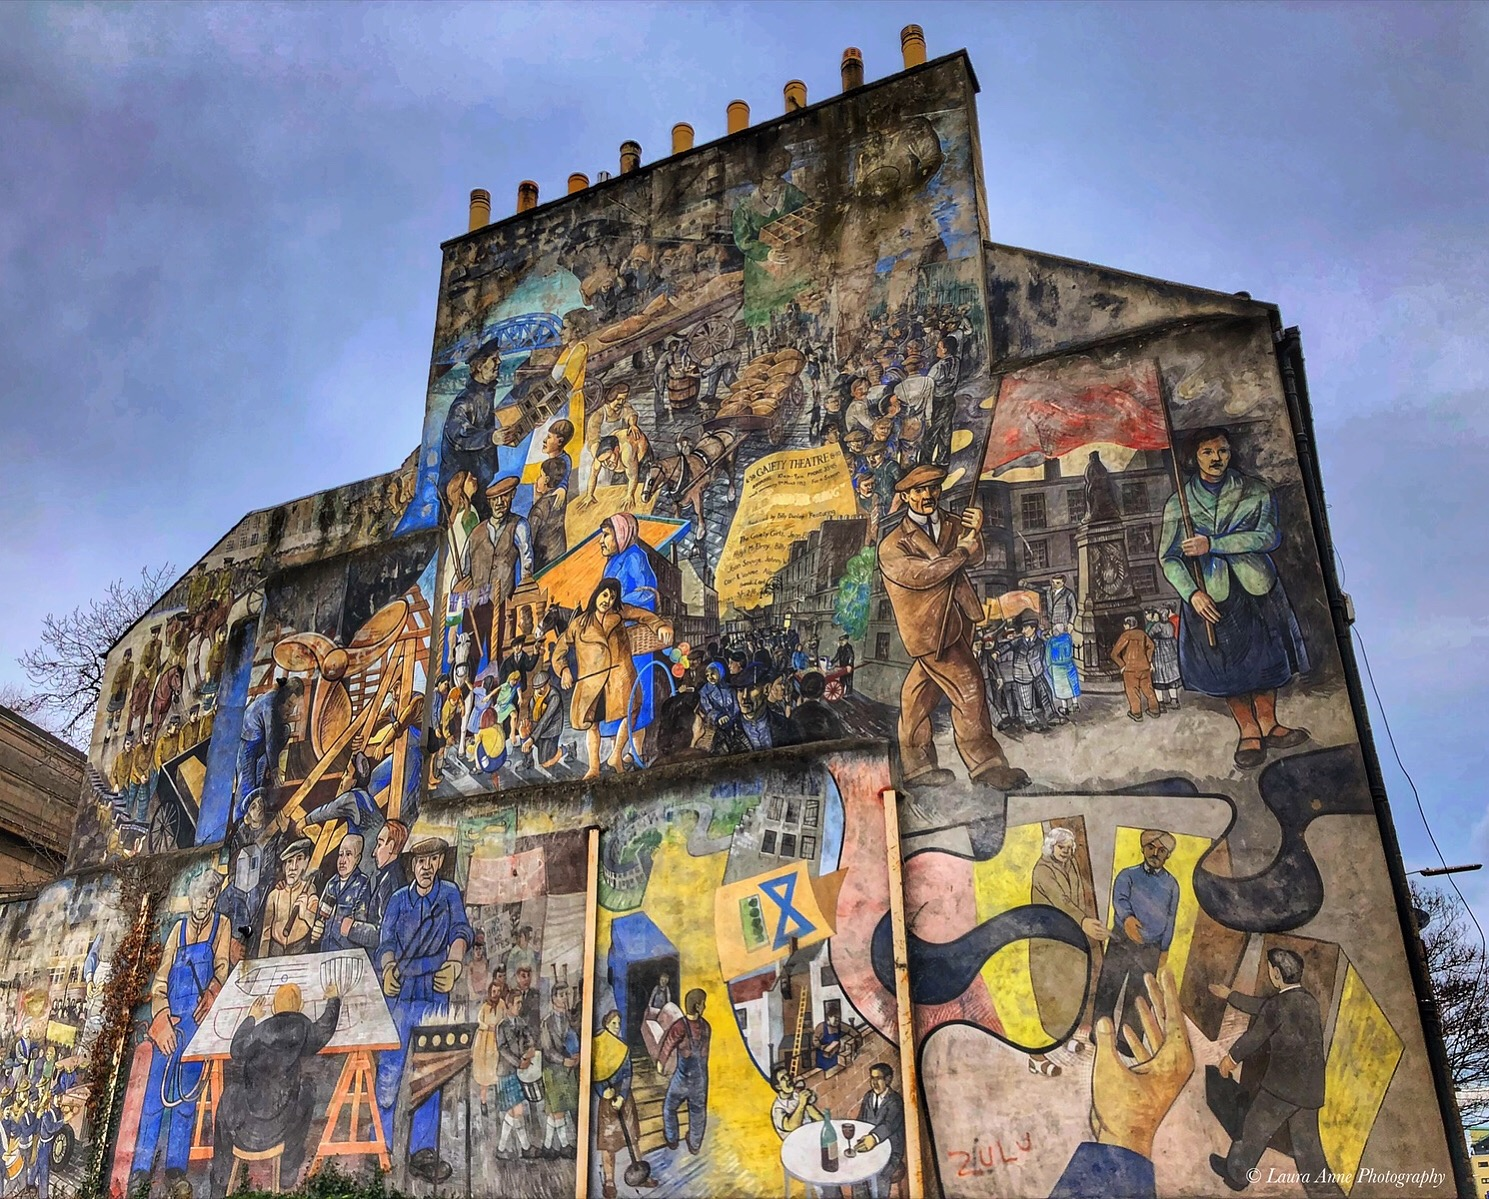 This mural covers the whole side of a building and depicts the history of Leith through colourful artwork